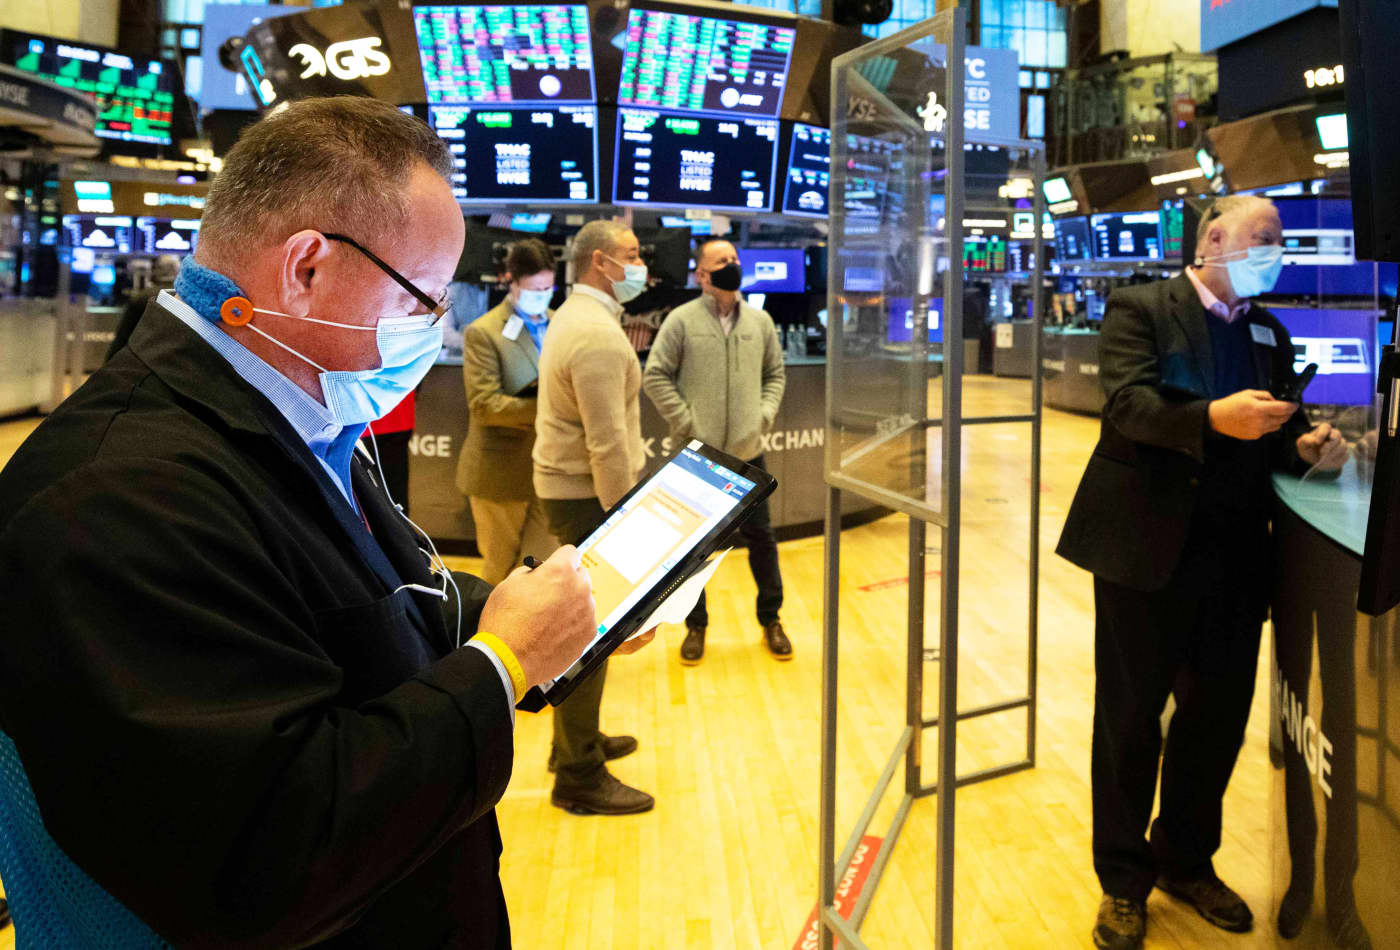 Rising interest rates may continue to test the stock market in the week ahead